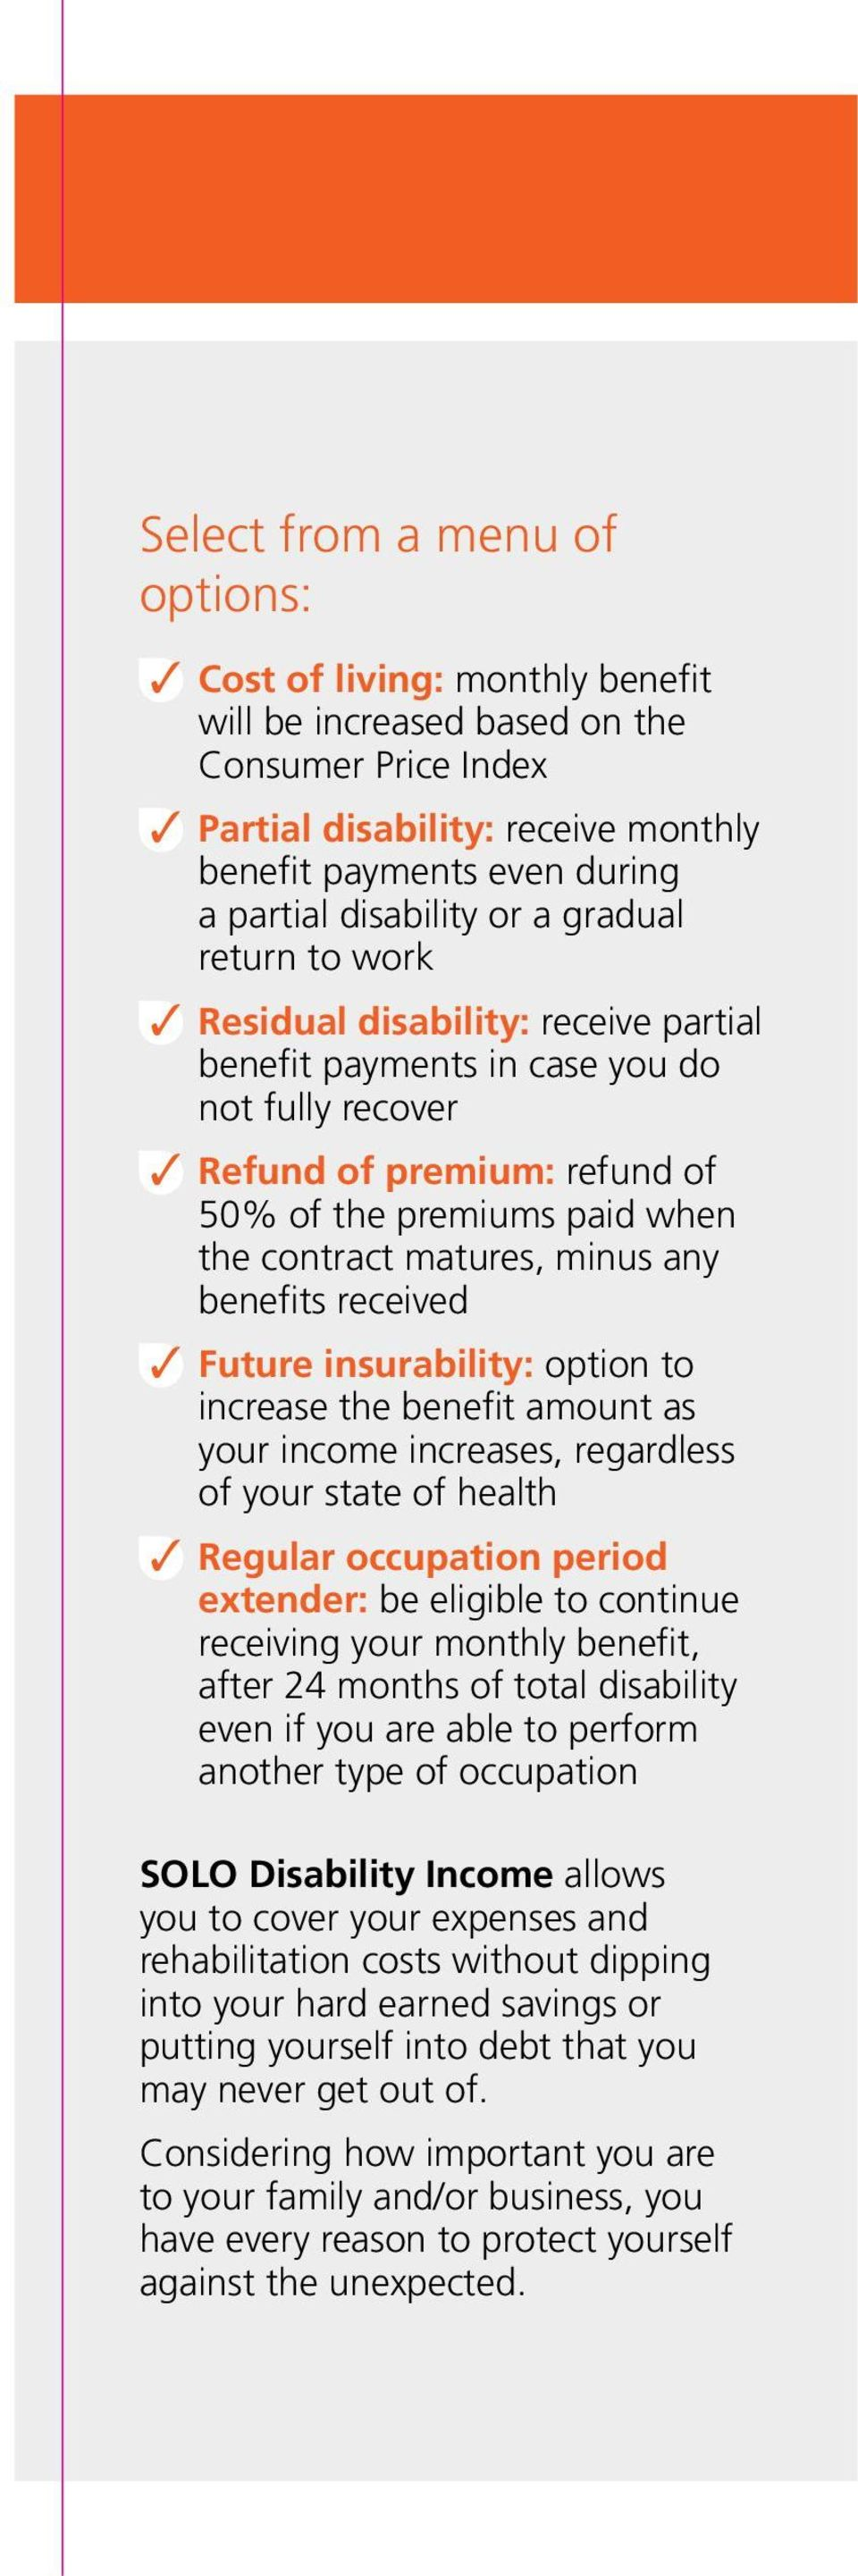 contract matures, minus any benefits received 3 Future insurability: option to increase the benefit amount as your income increases, regardless of your state of health 3 Regular occupation period